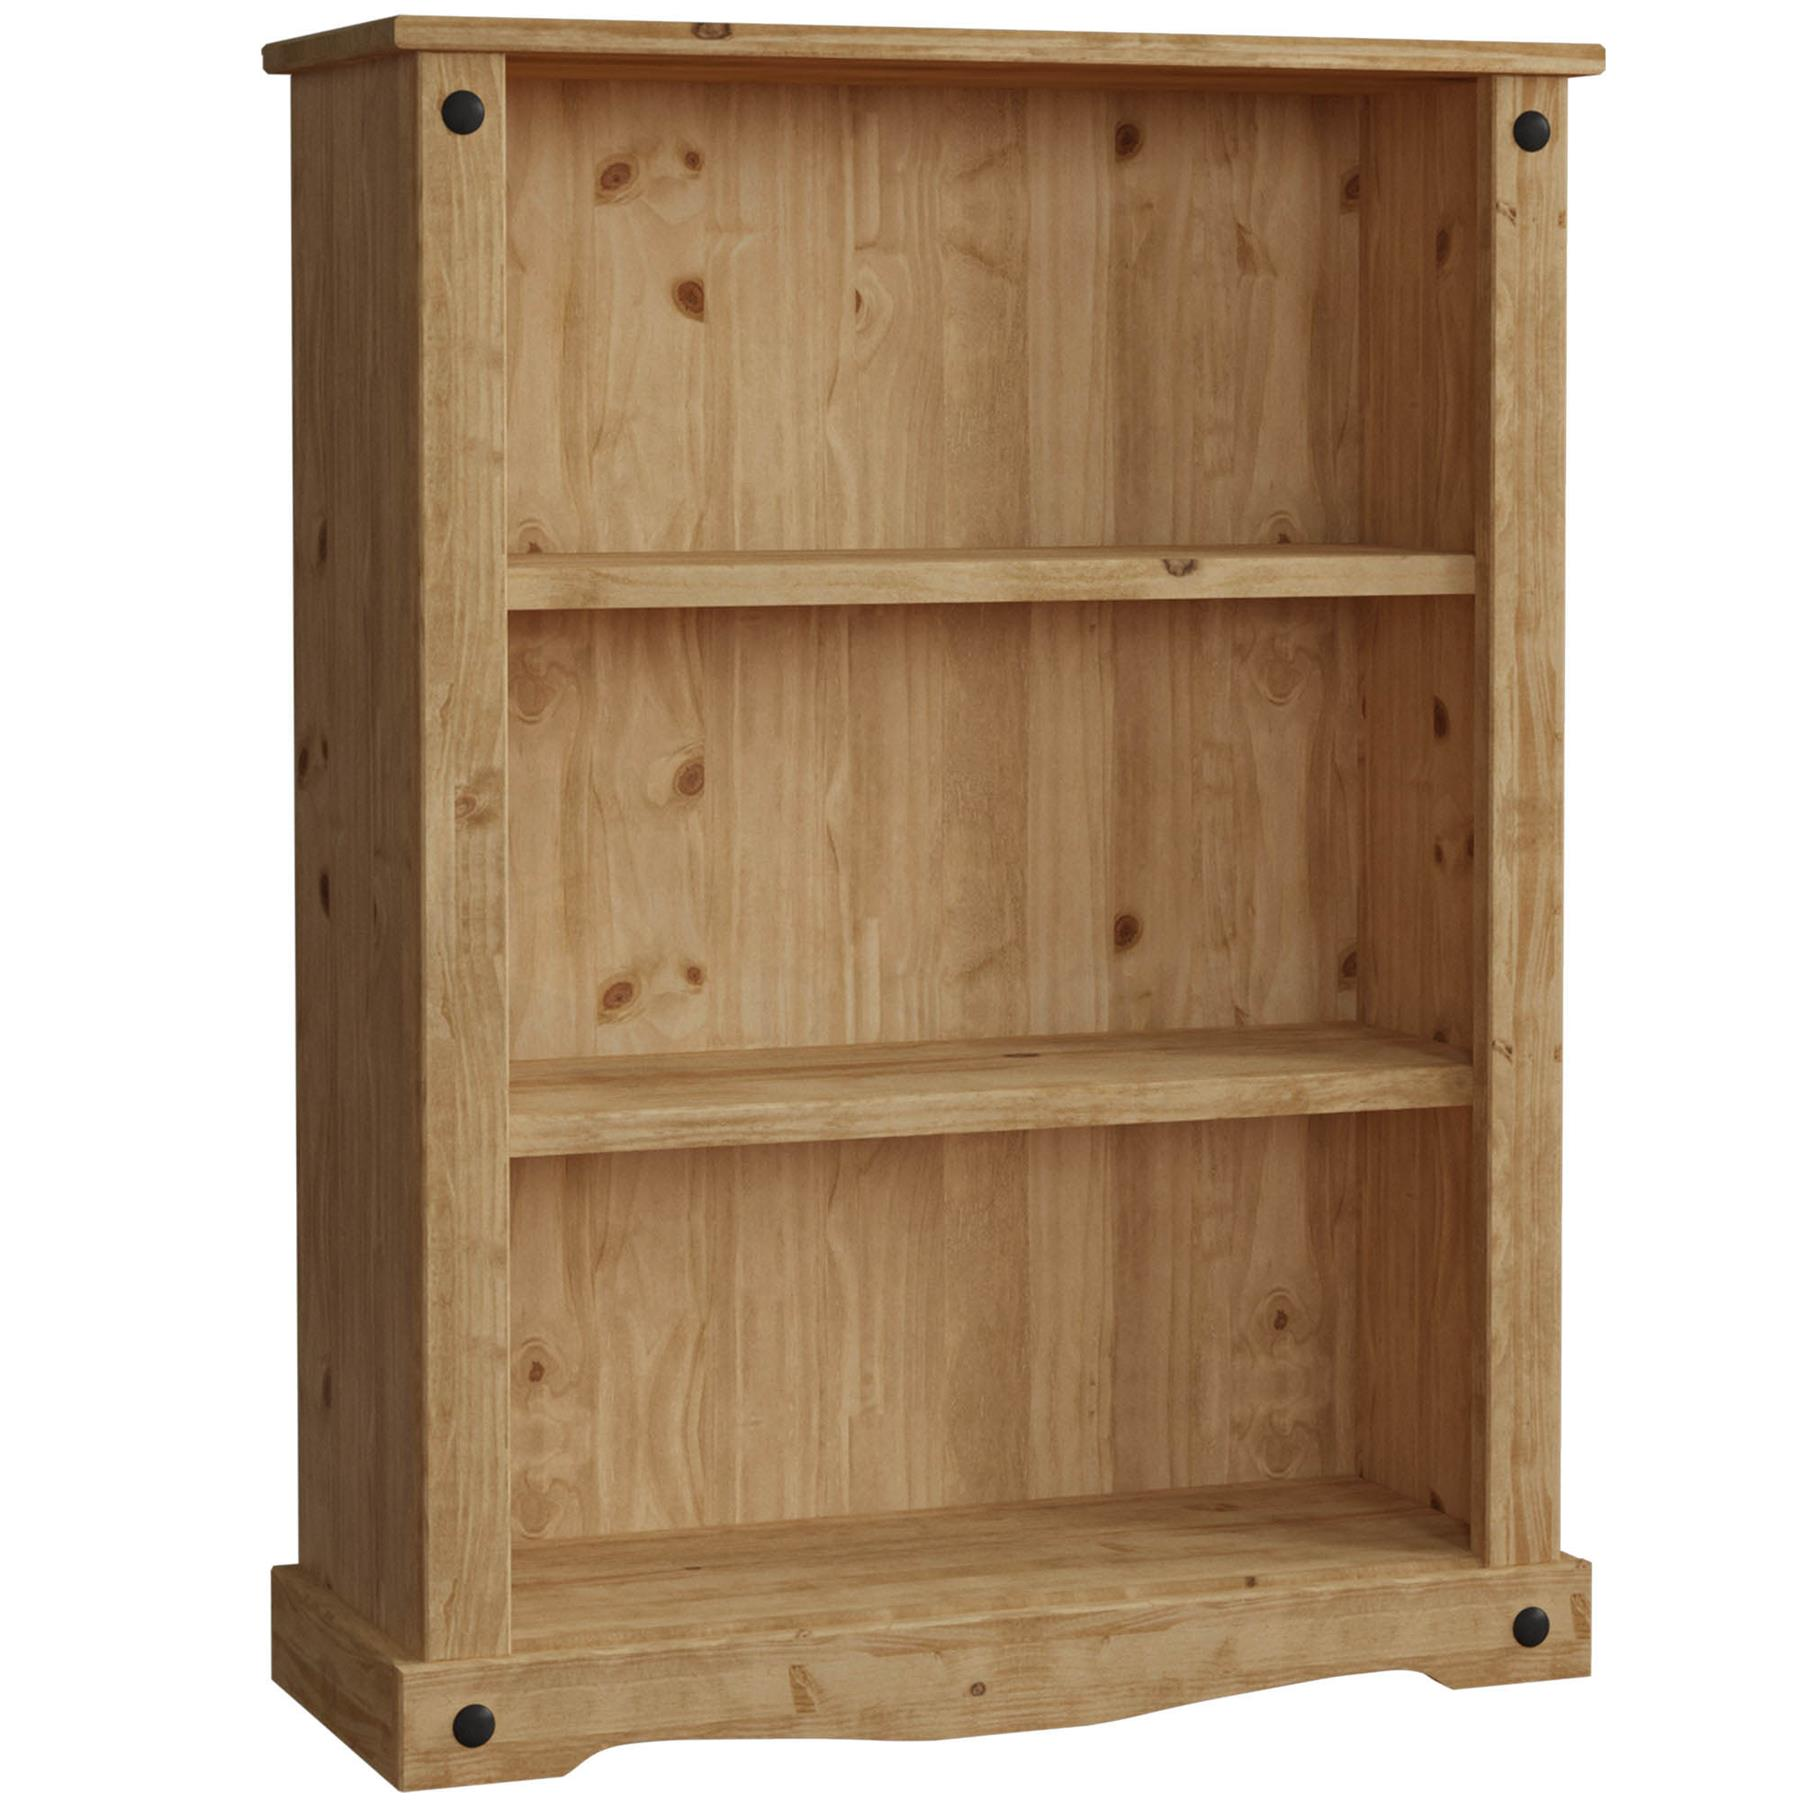 Details About Corona Low Bookcase 2 Shelf Storage Solid Pine Wood Display Cabinet Furniture